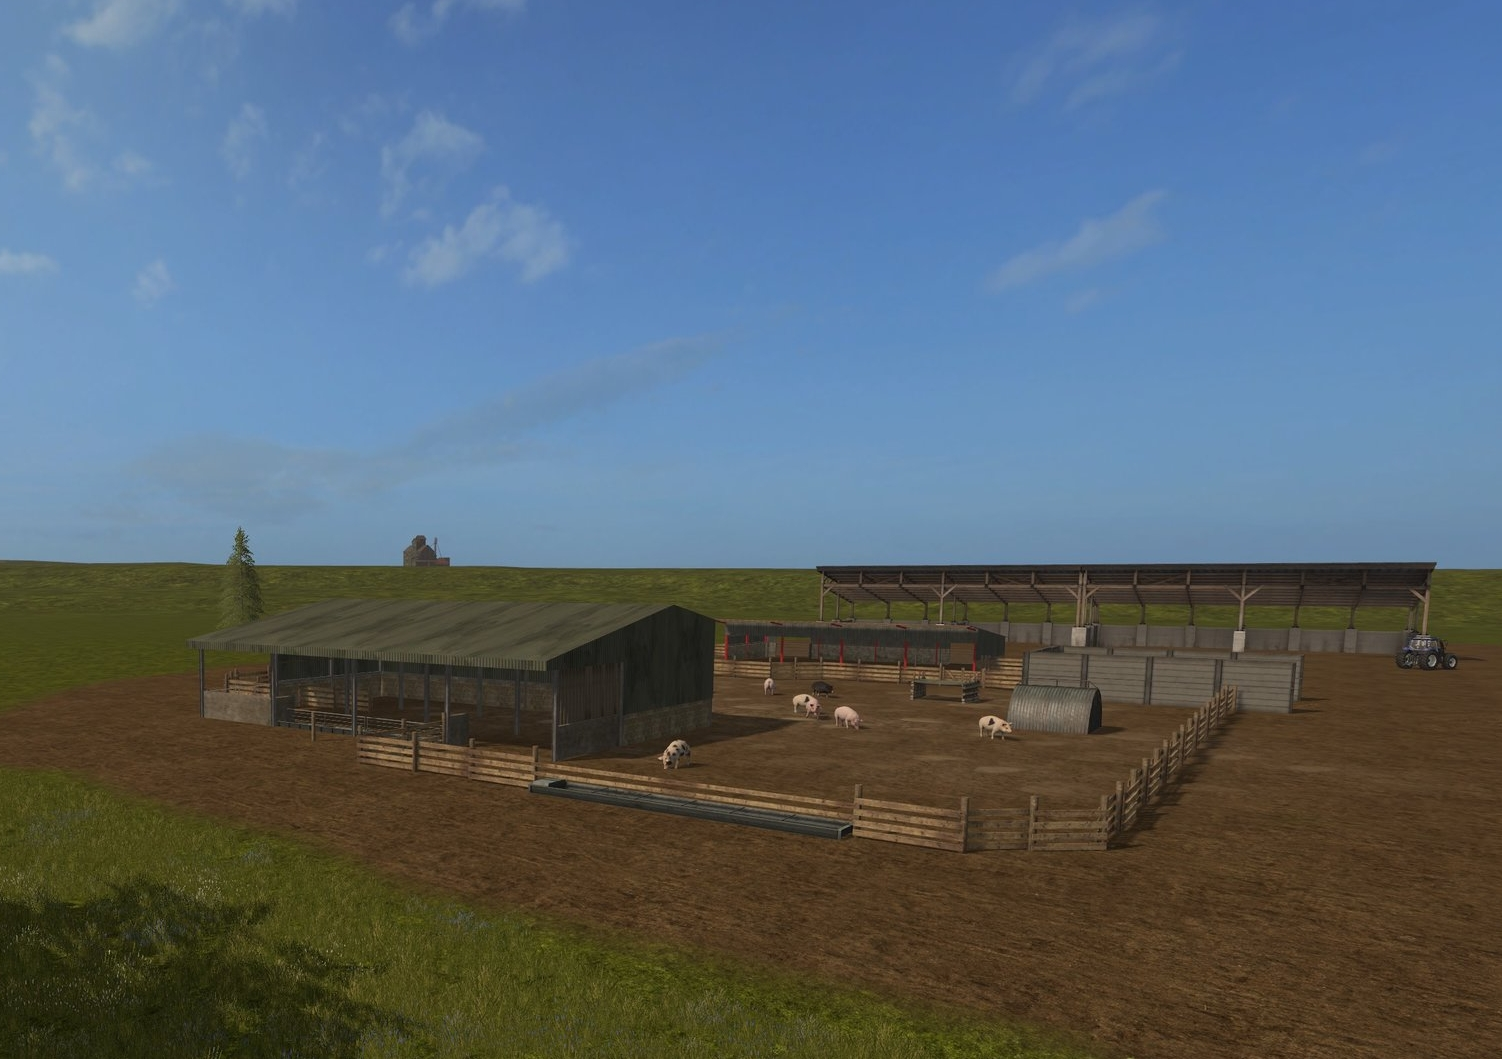 Pig enclosure with new shed